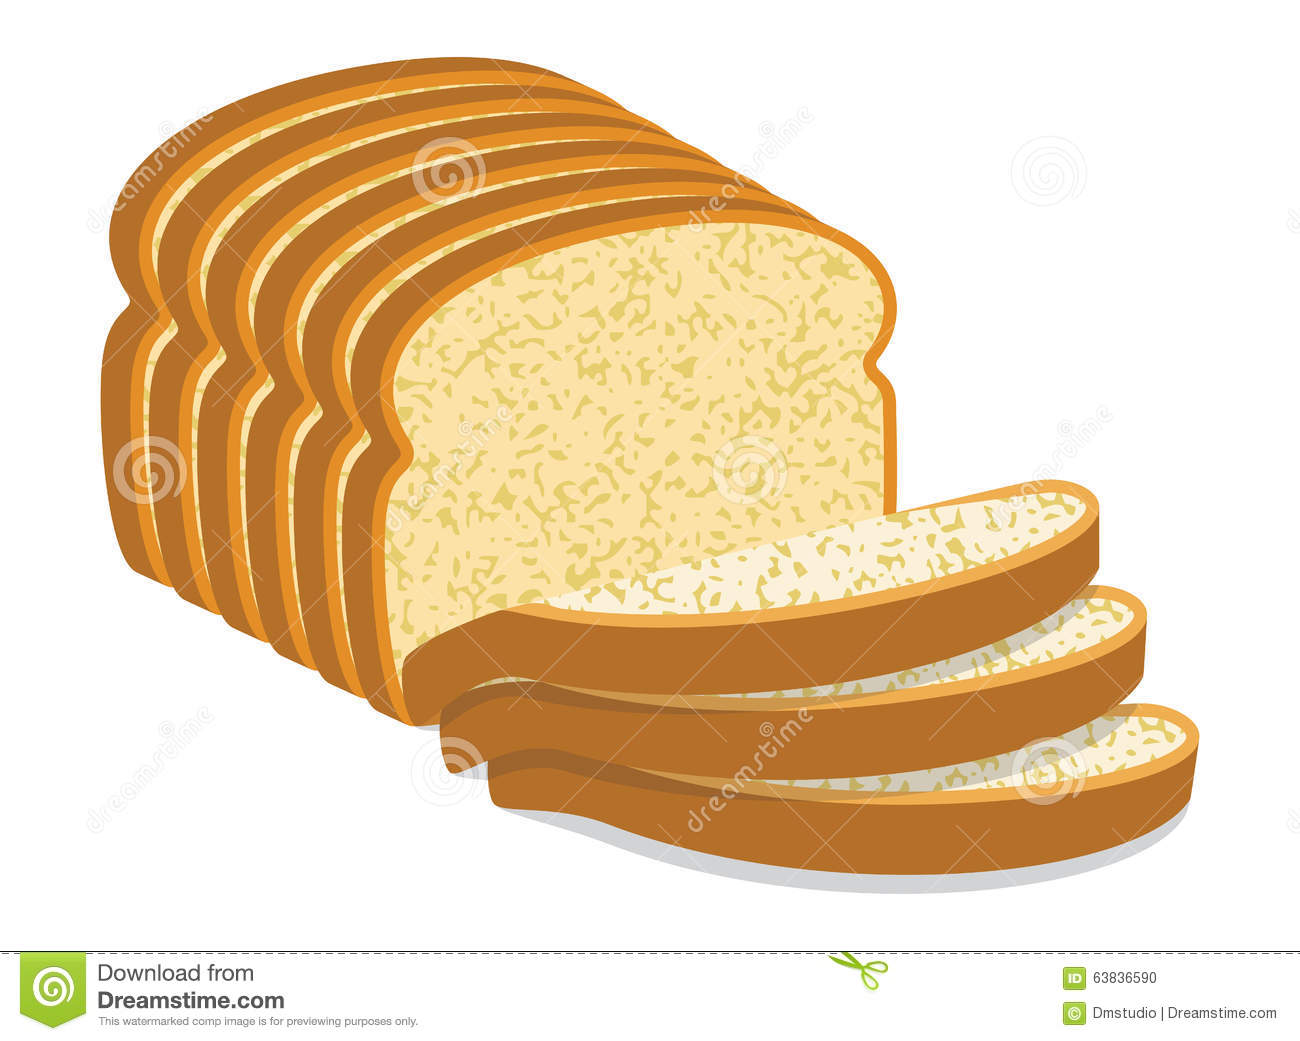 white bread slices, vector